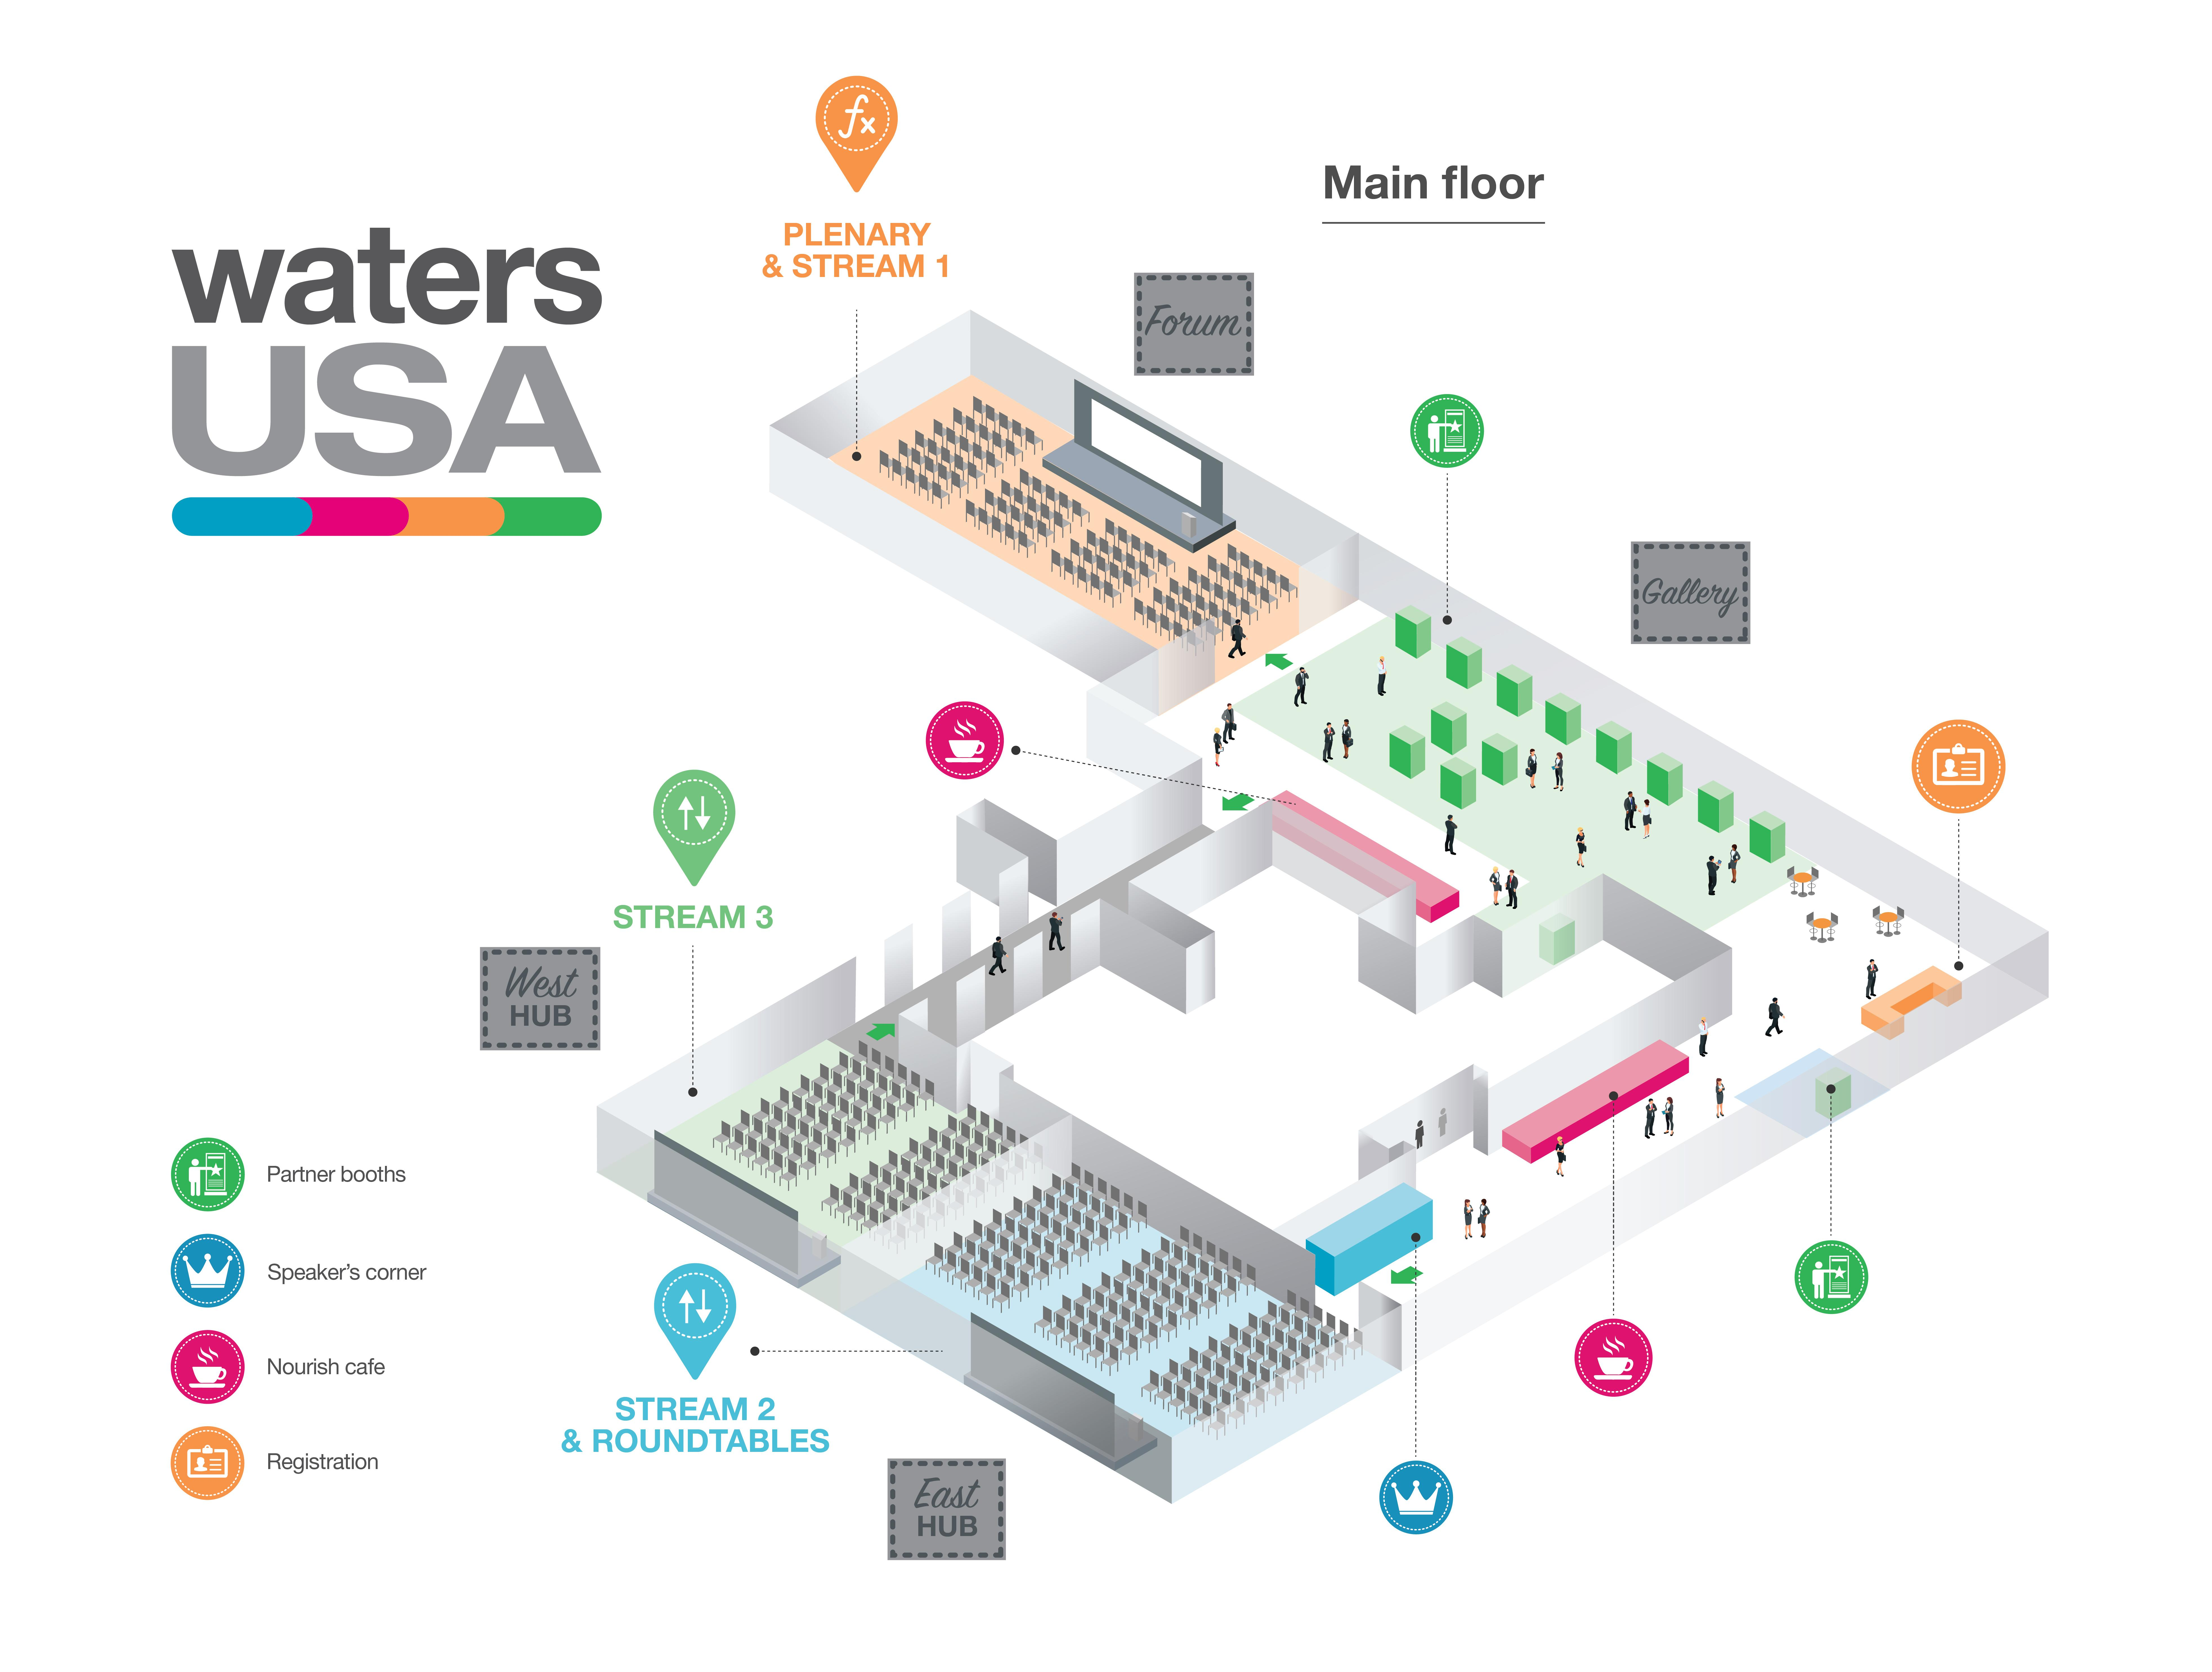 Waters USA floorplan 2019